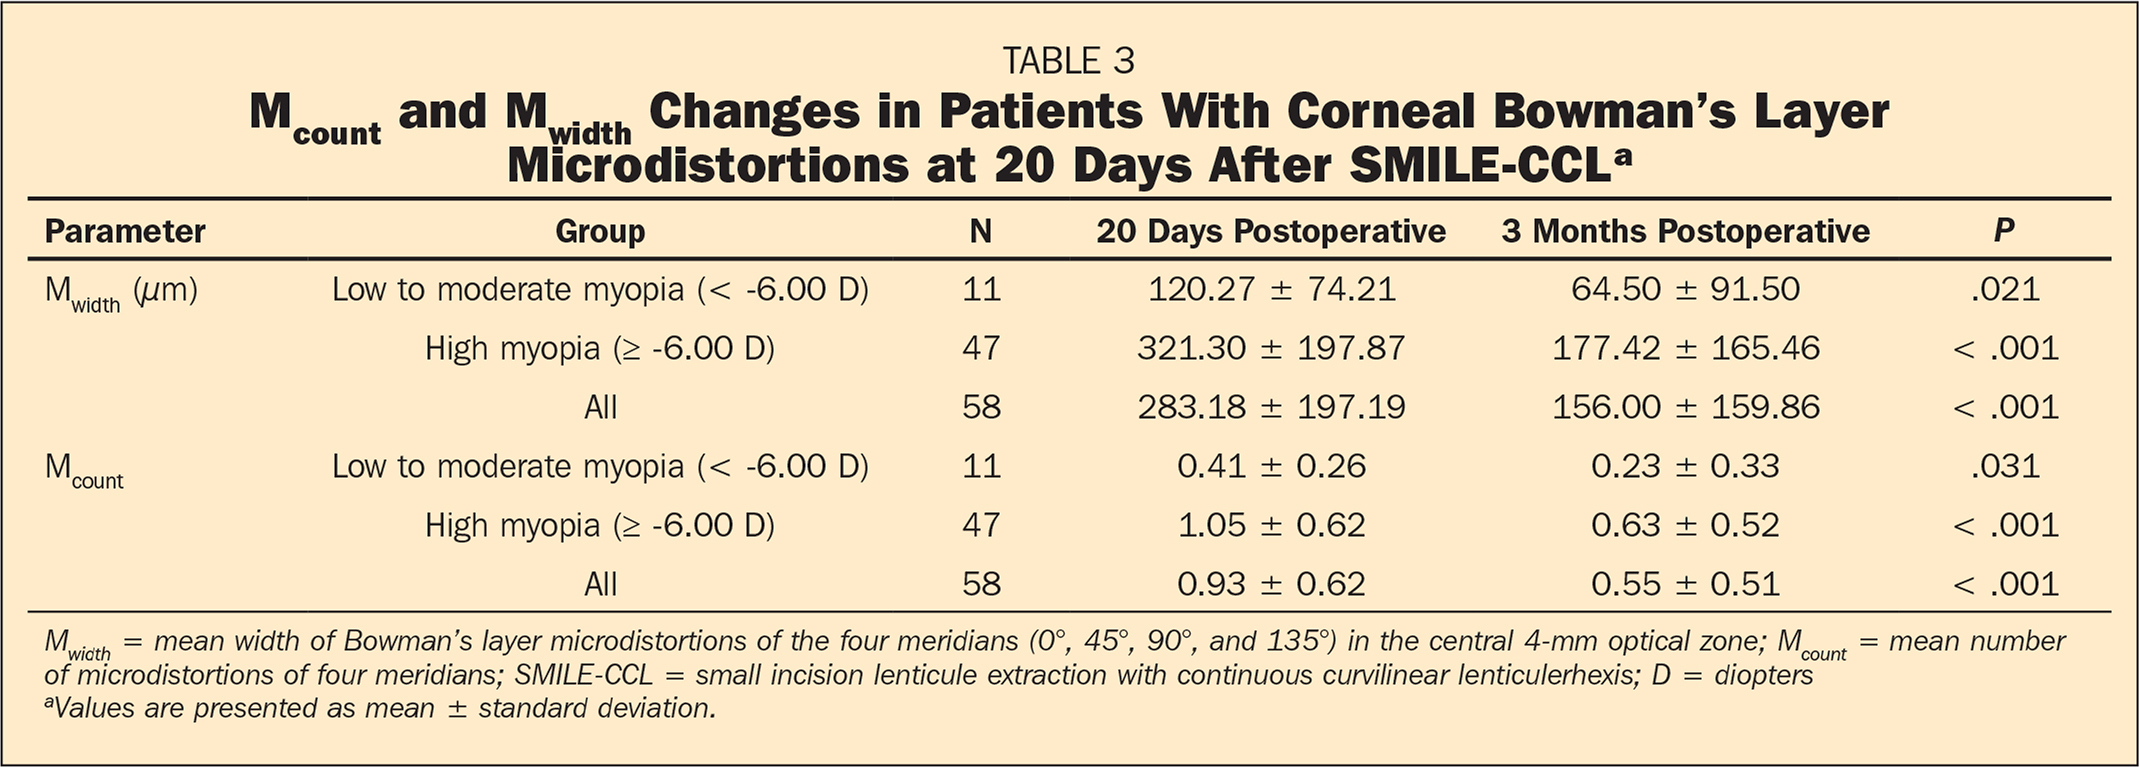 Mcount and Mwidth Changes in Patients With Corneal Bowman's Layer Microdistortions at 20 Days After SMILE-CCLa